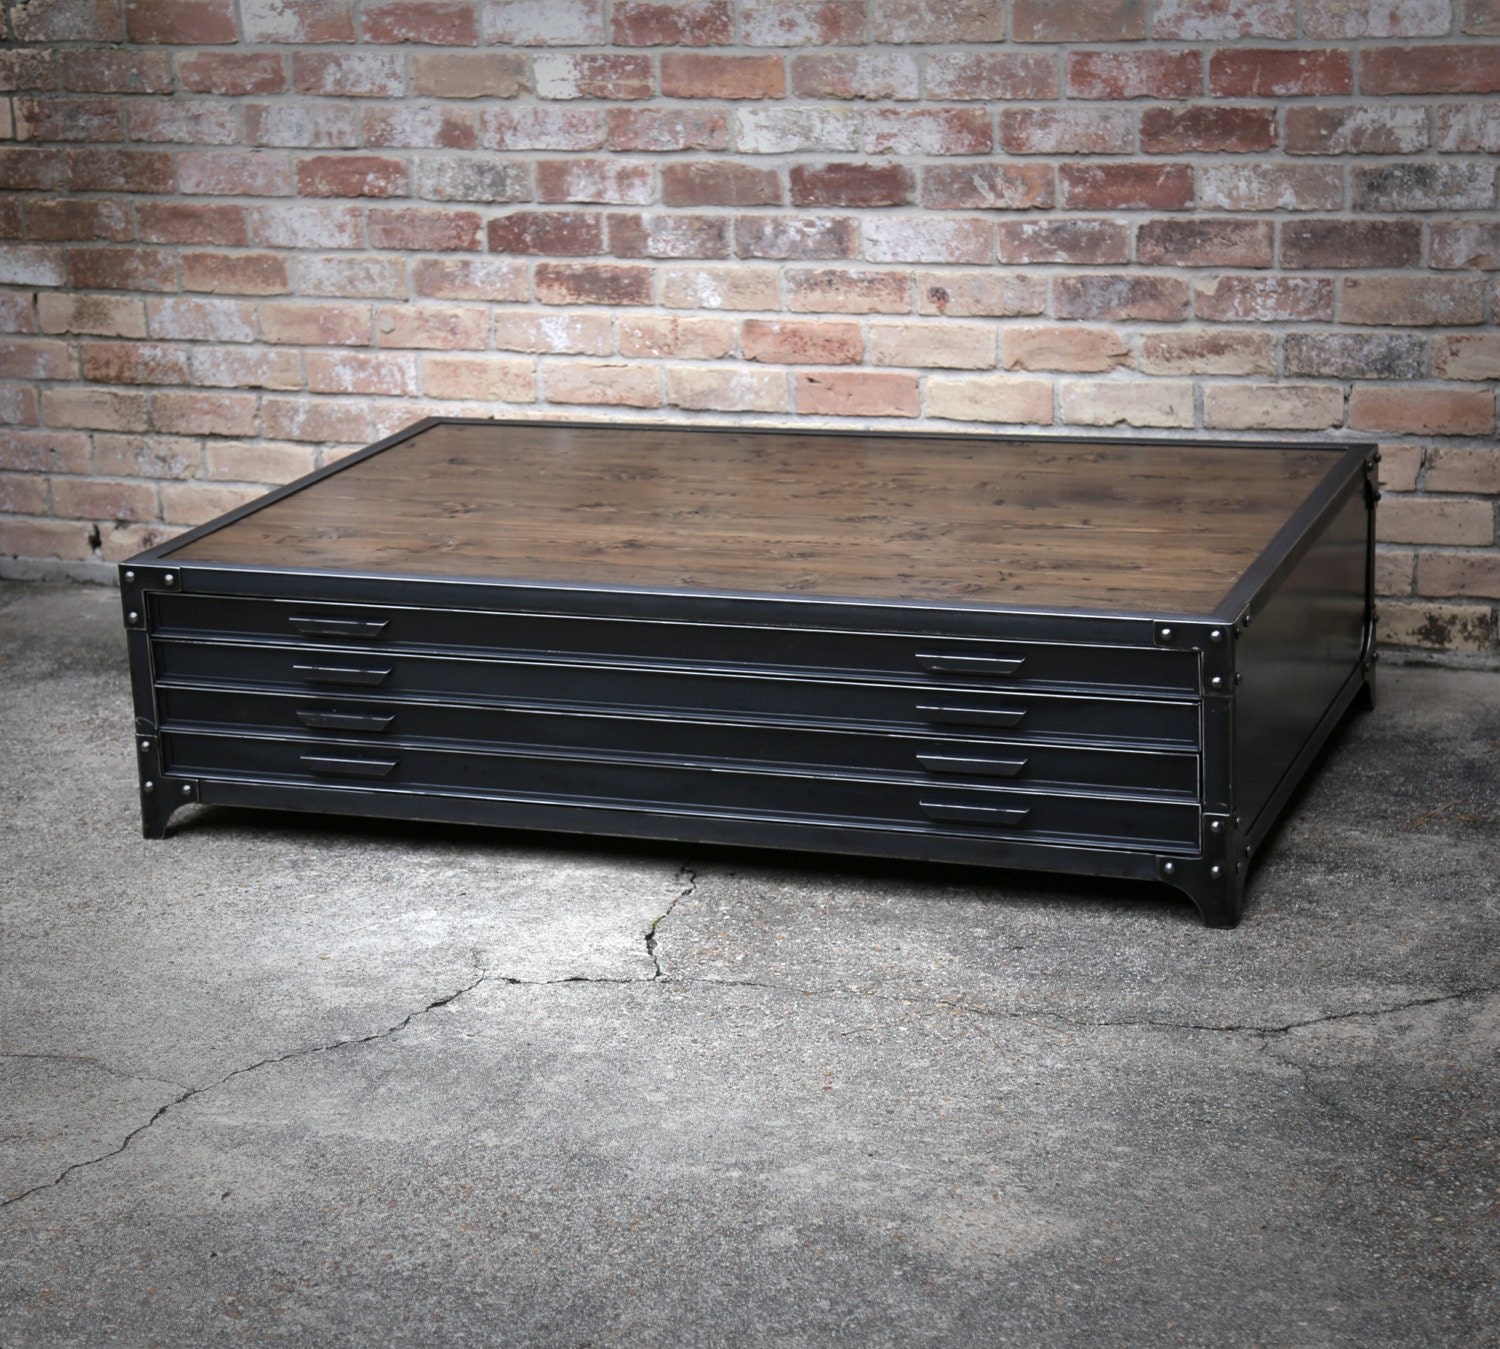 Flat File Industrial Coffee Table Handmade Steel Drawers